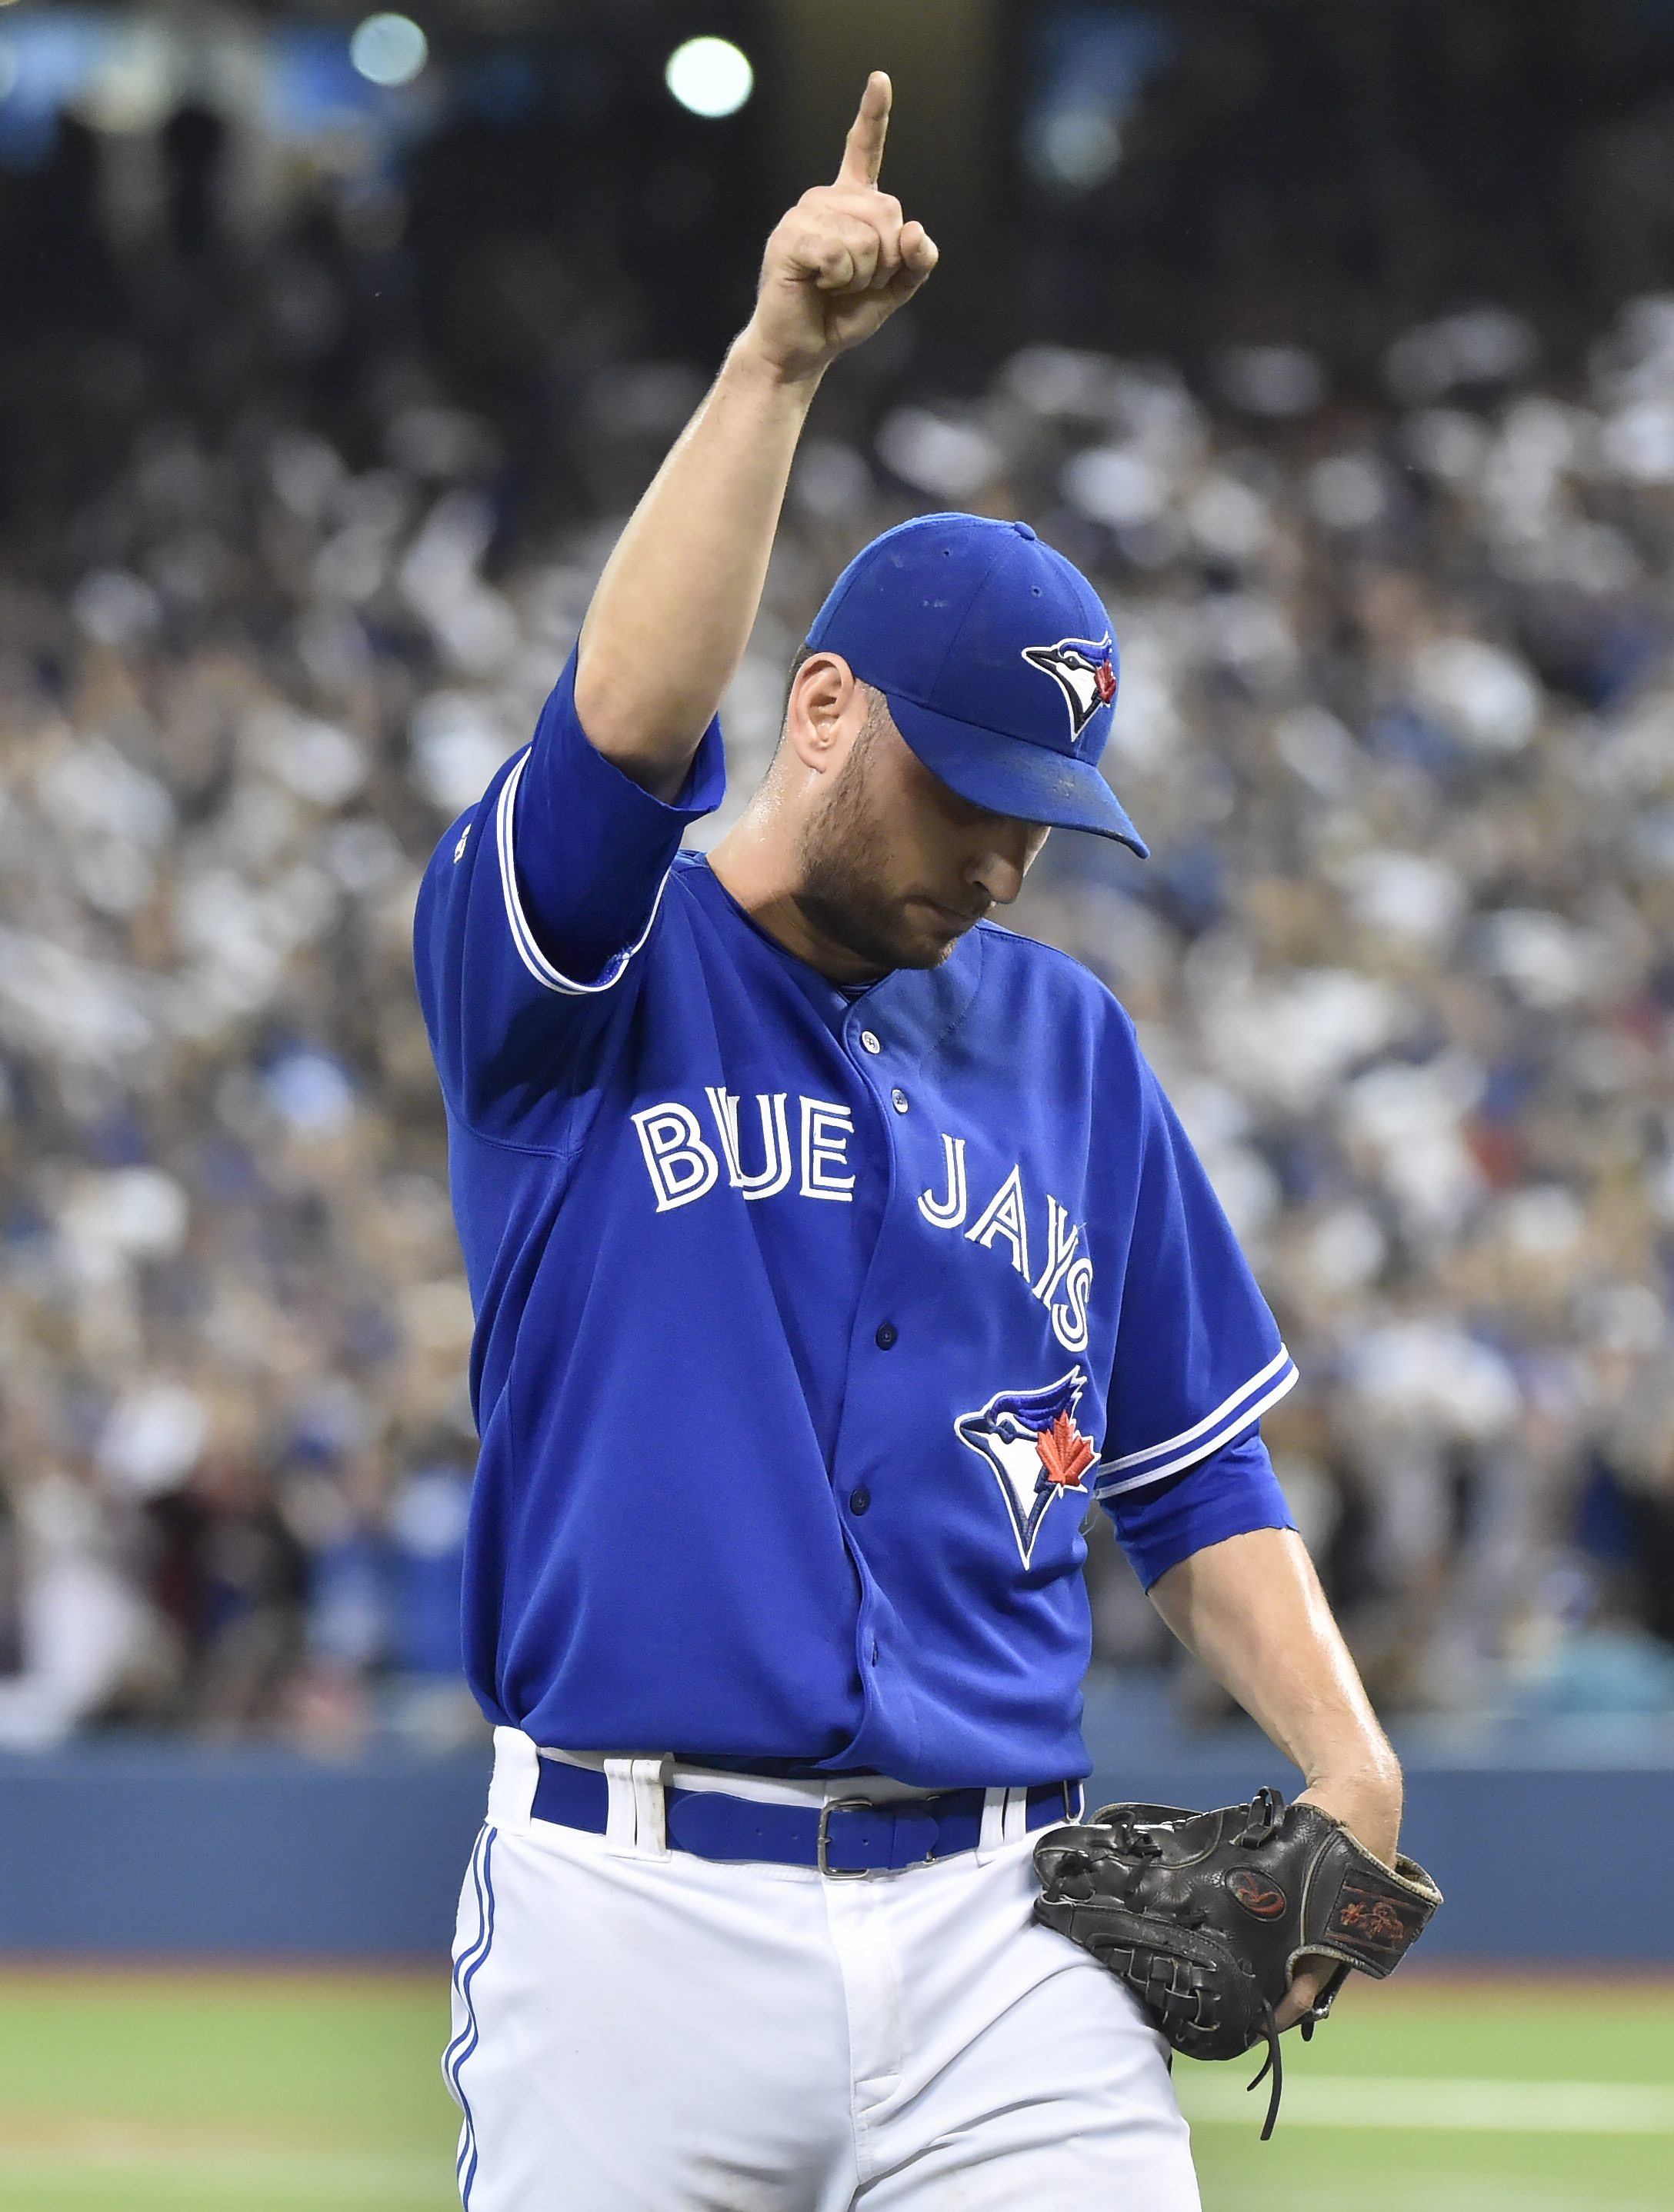 Toronto Blue Jays' starting pitcher Marco Estrada signals number one after being pulled from the game against the Kansas City Royals during the eighth inning in Game 5 of baseball's American League Championship Series on Wednesday, Oct. 21, 2015, in Toron